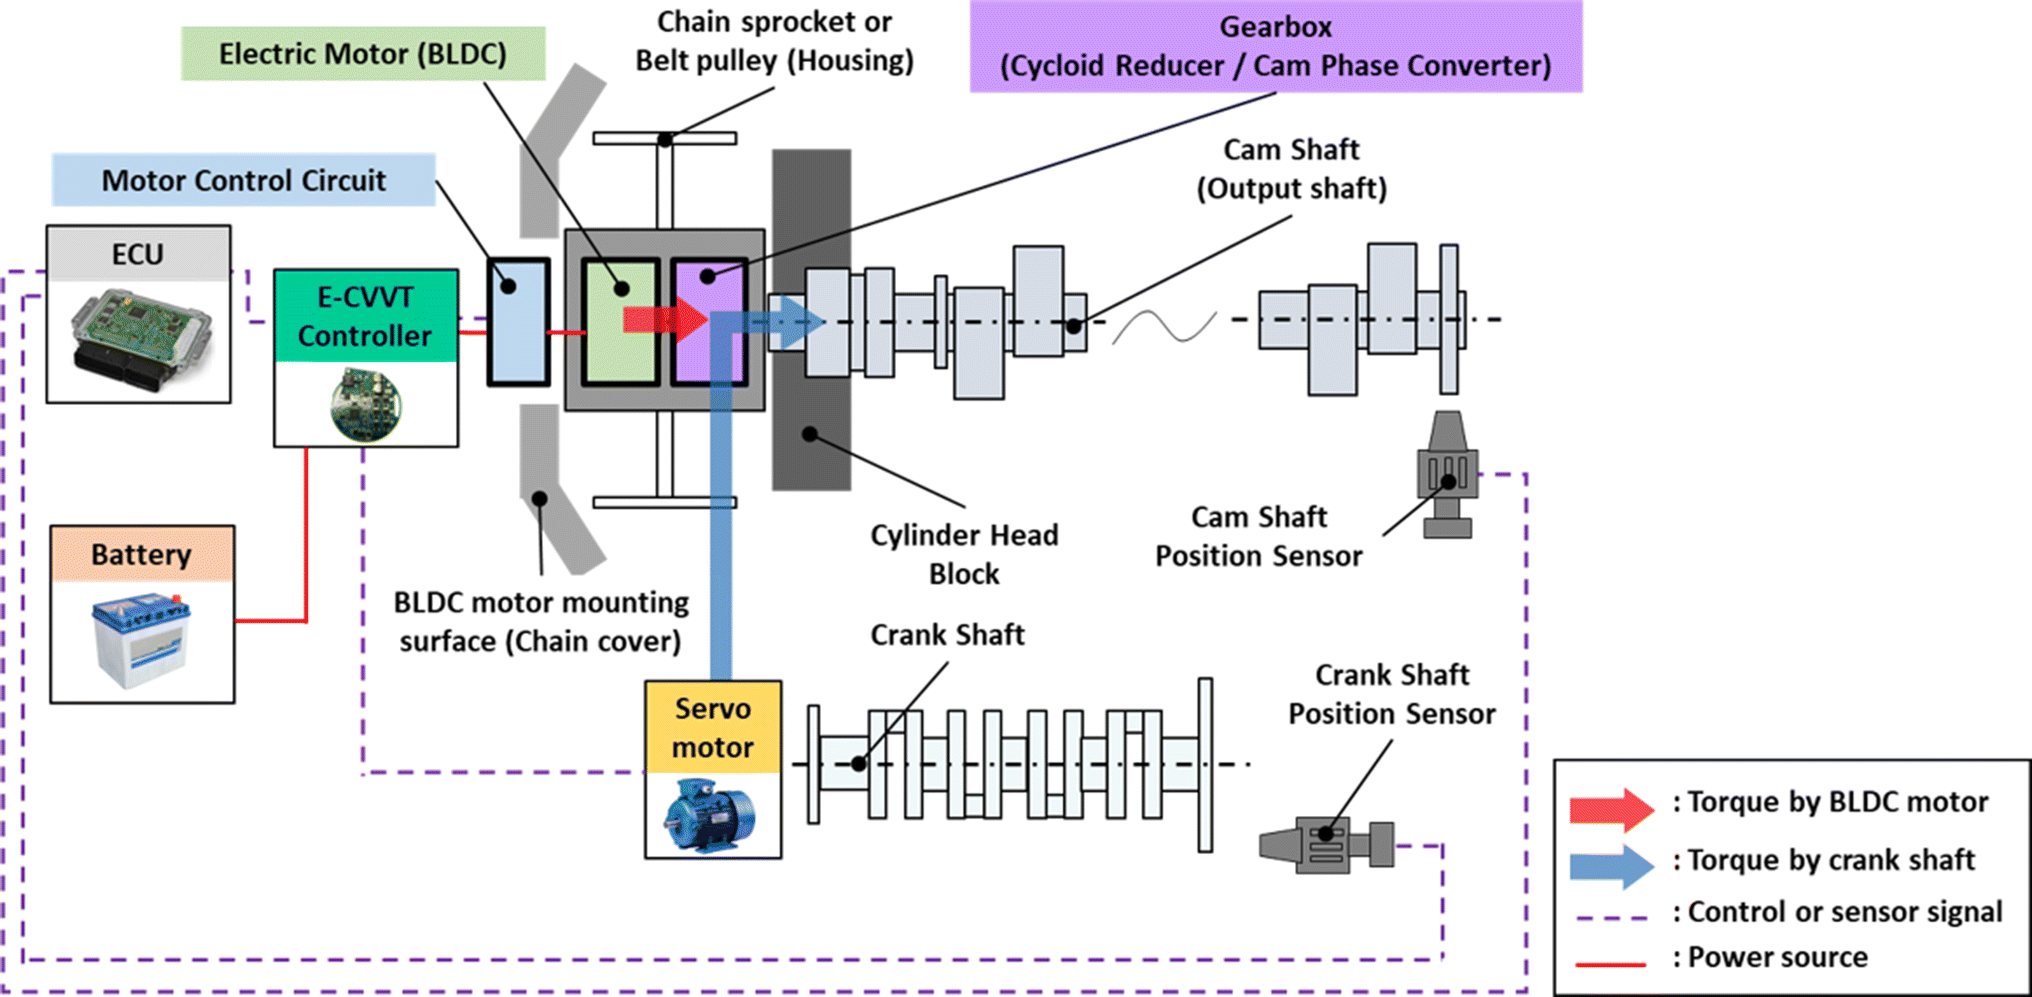 A study on the improvement of the cam phase control performance of